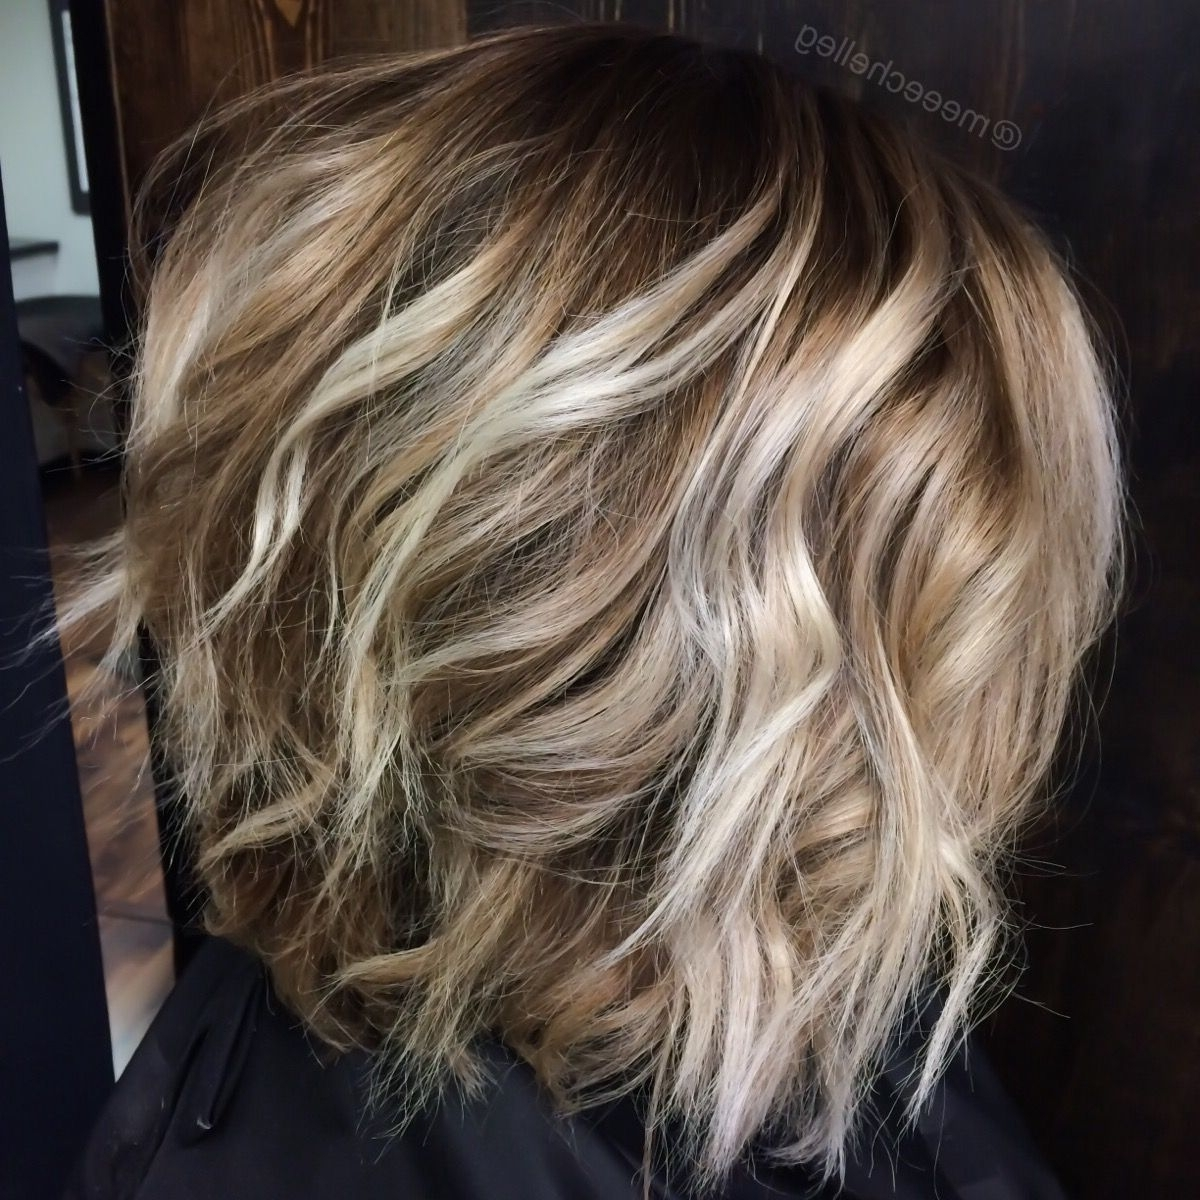 Trendy Dishwater Waves Blonde Hairstyles Throughout Bob, Blonde, Highlights, Lowlights, Bright Blonde Pieces, Waves (View 19 of 20)